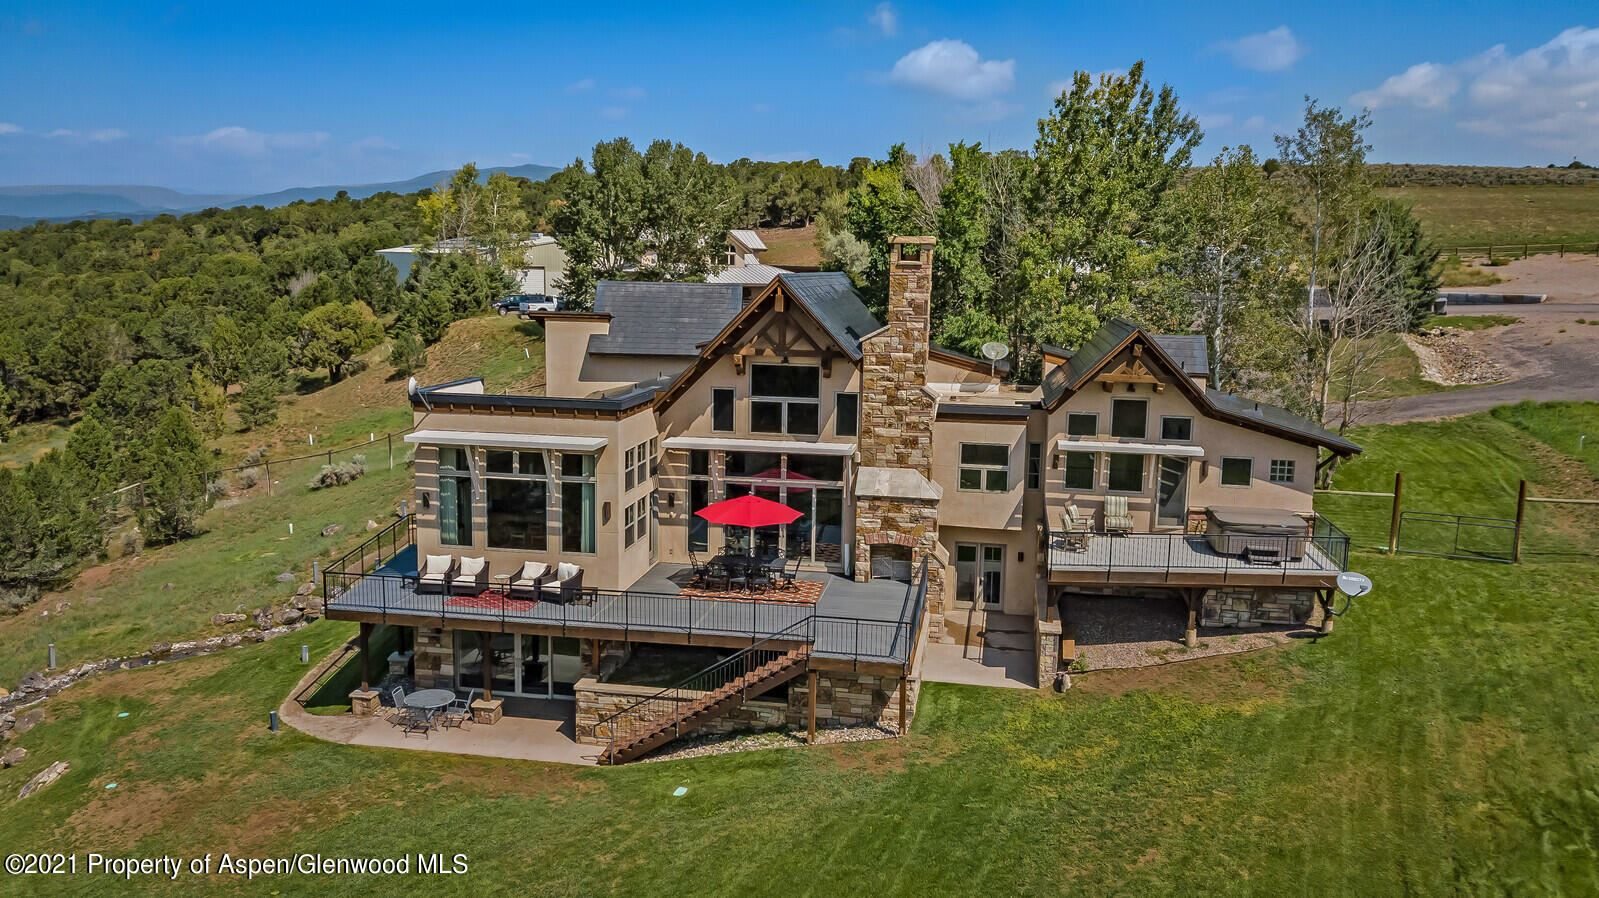 5333 County Rd 100                                                                               Carbondale                                                                      , CO - $12,850,000